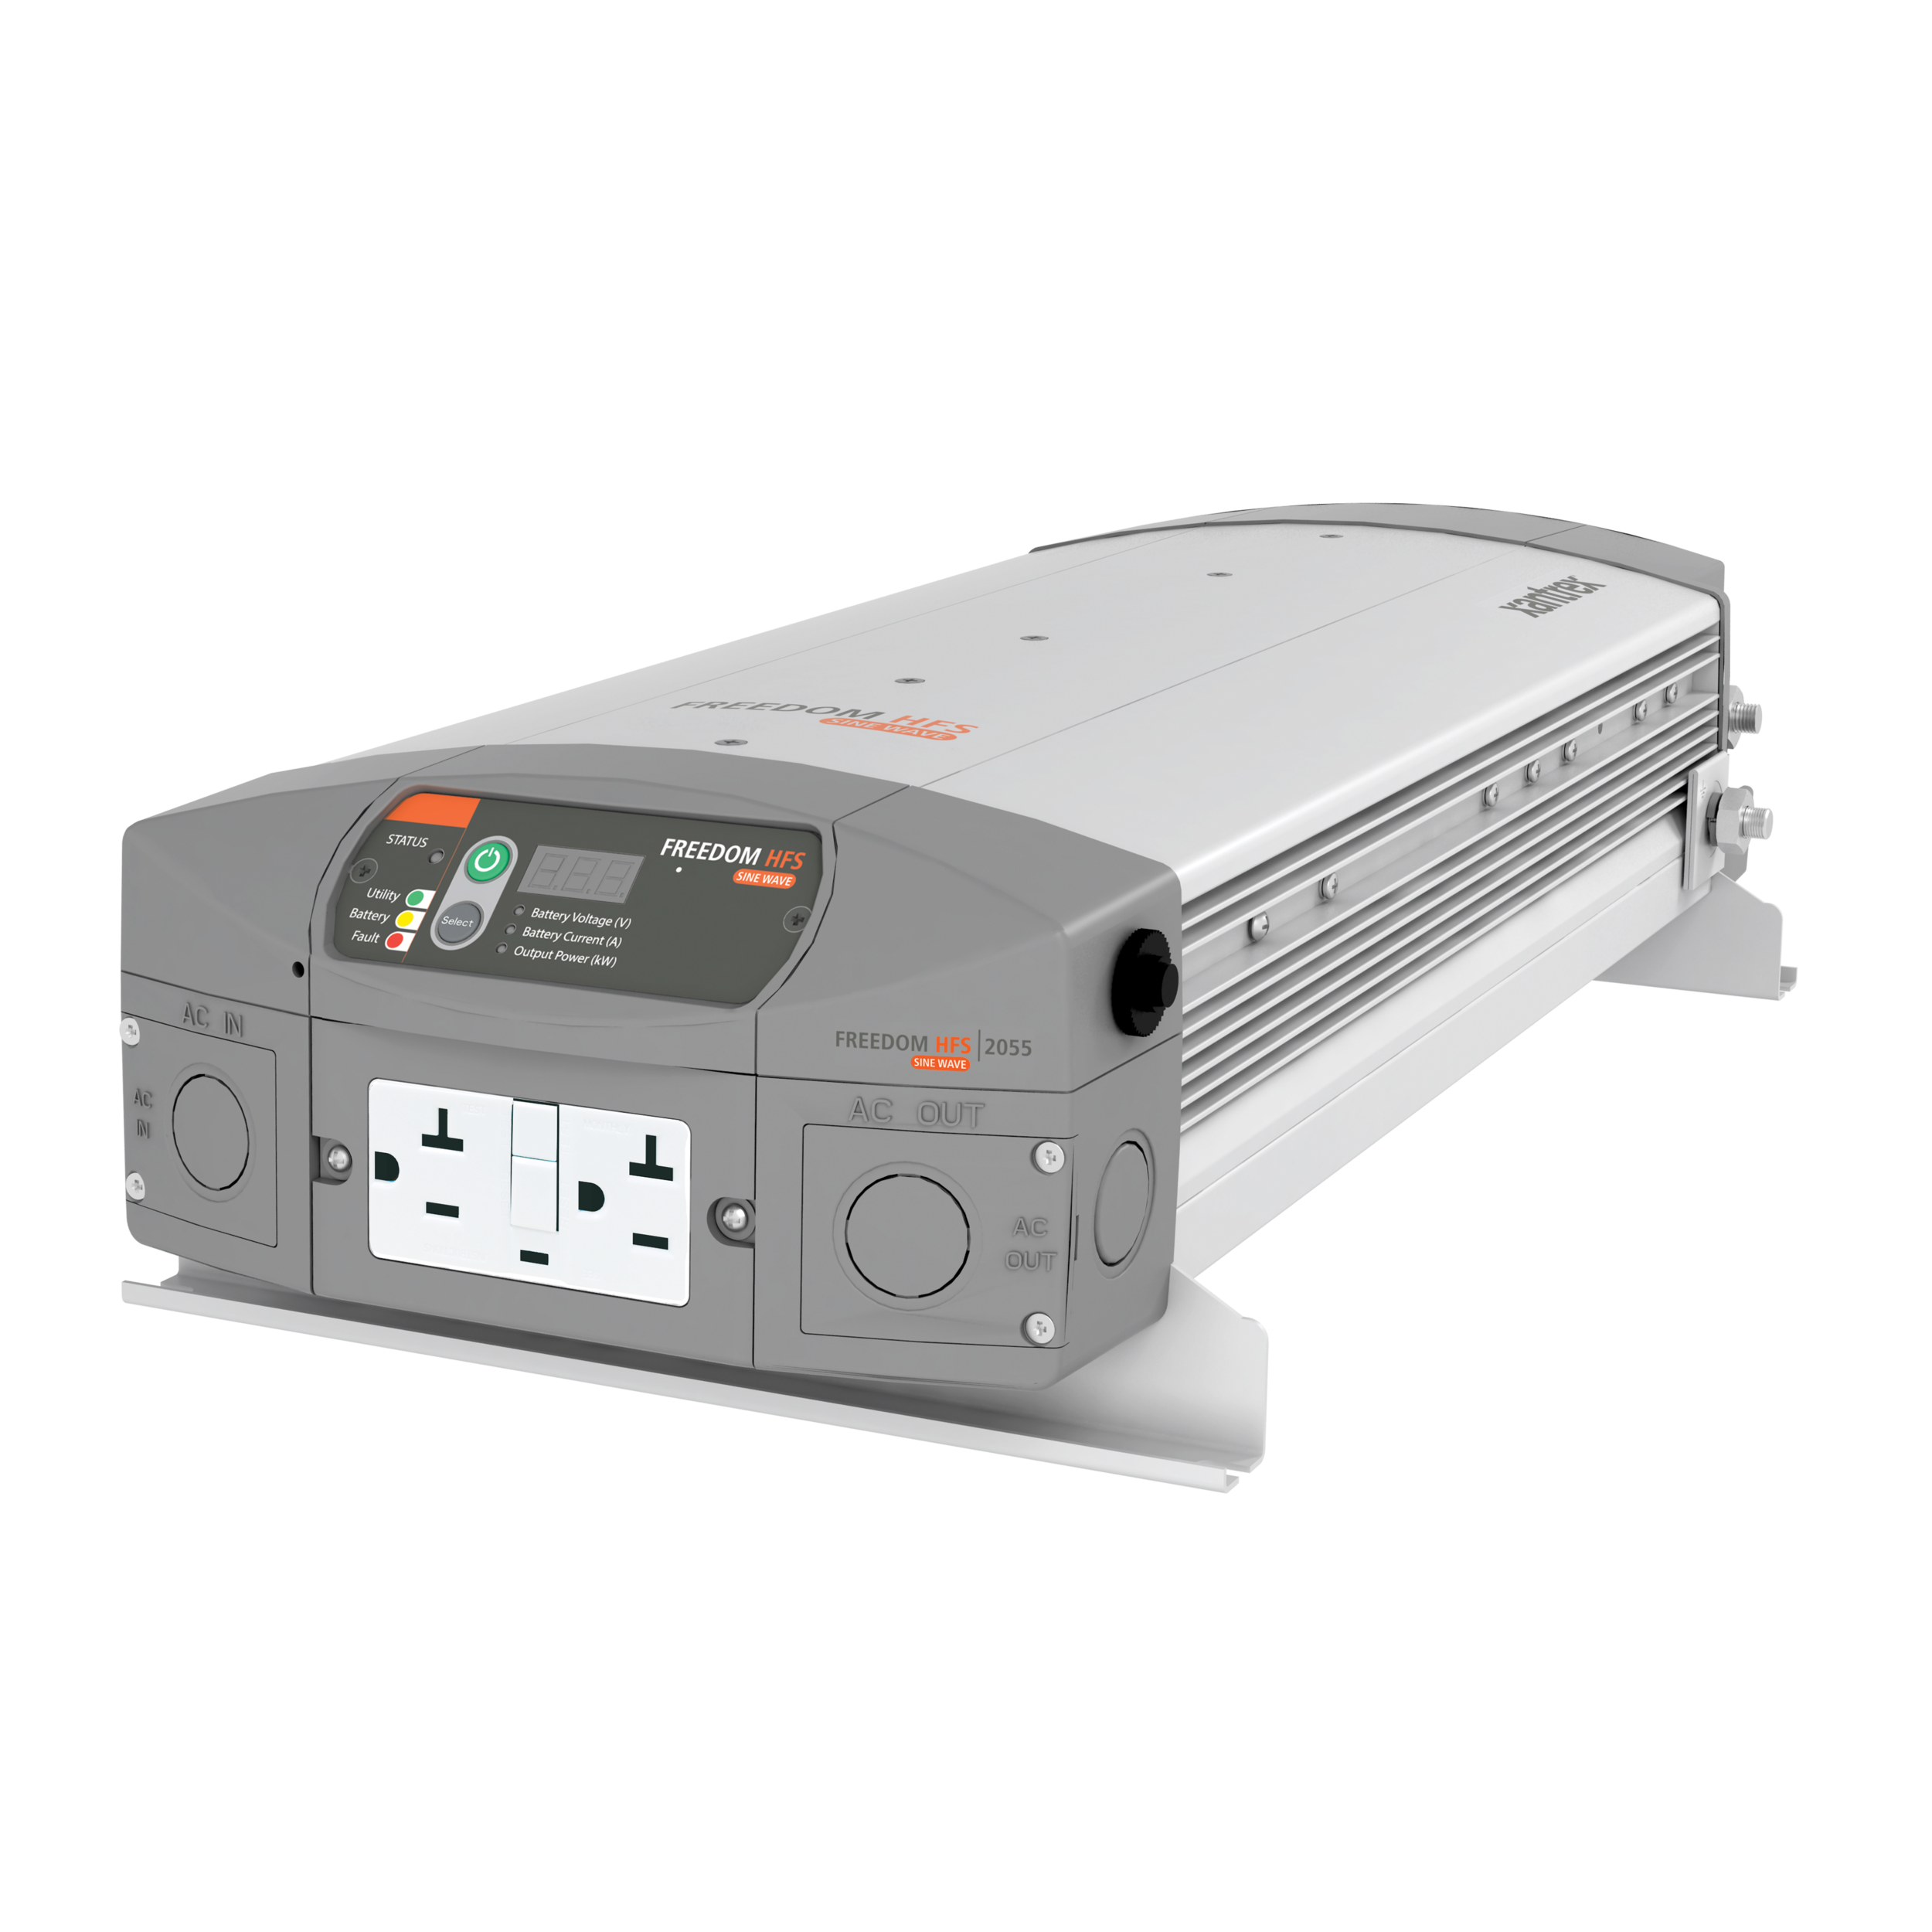 Xantrex inverter/charger monitors and charges the battery      Provides 20000 Watts of power for anything you need to use with the PartyPod